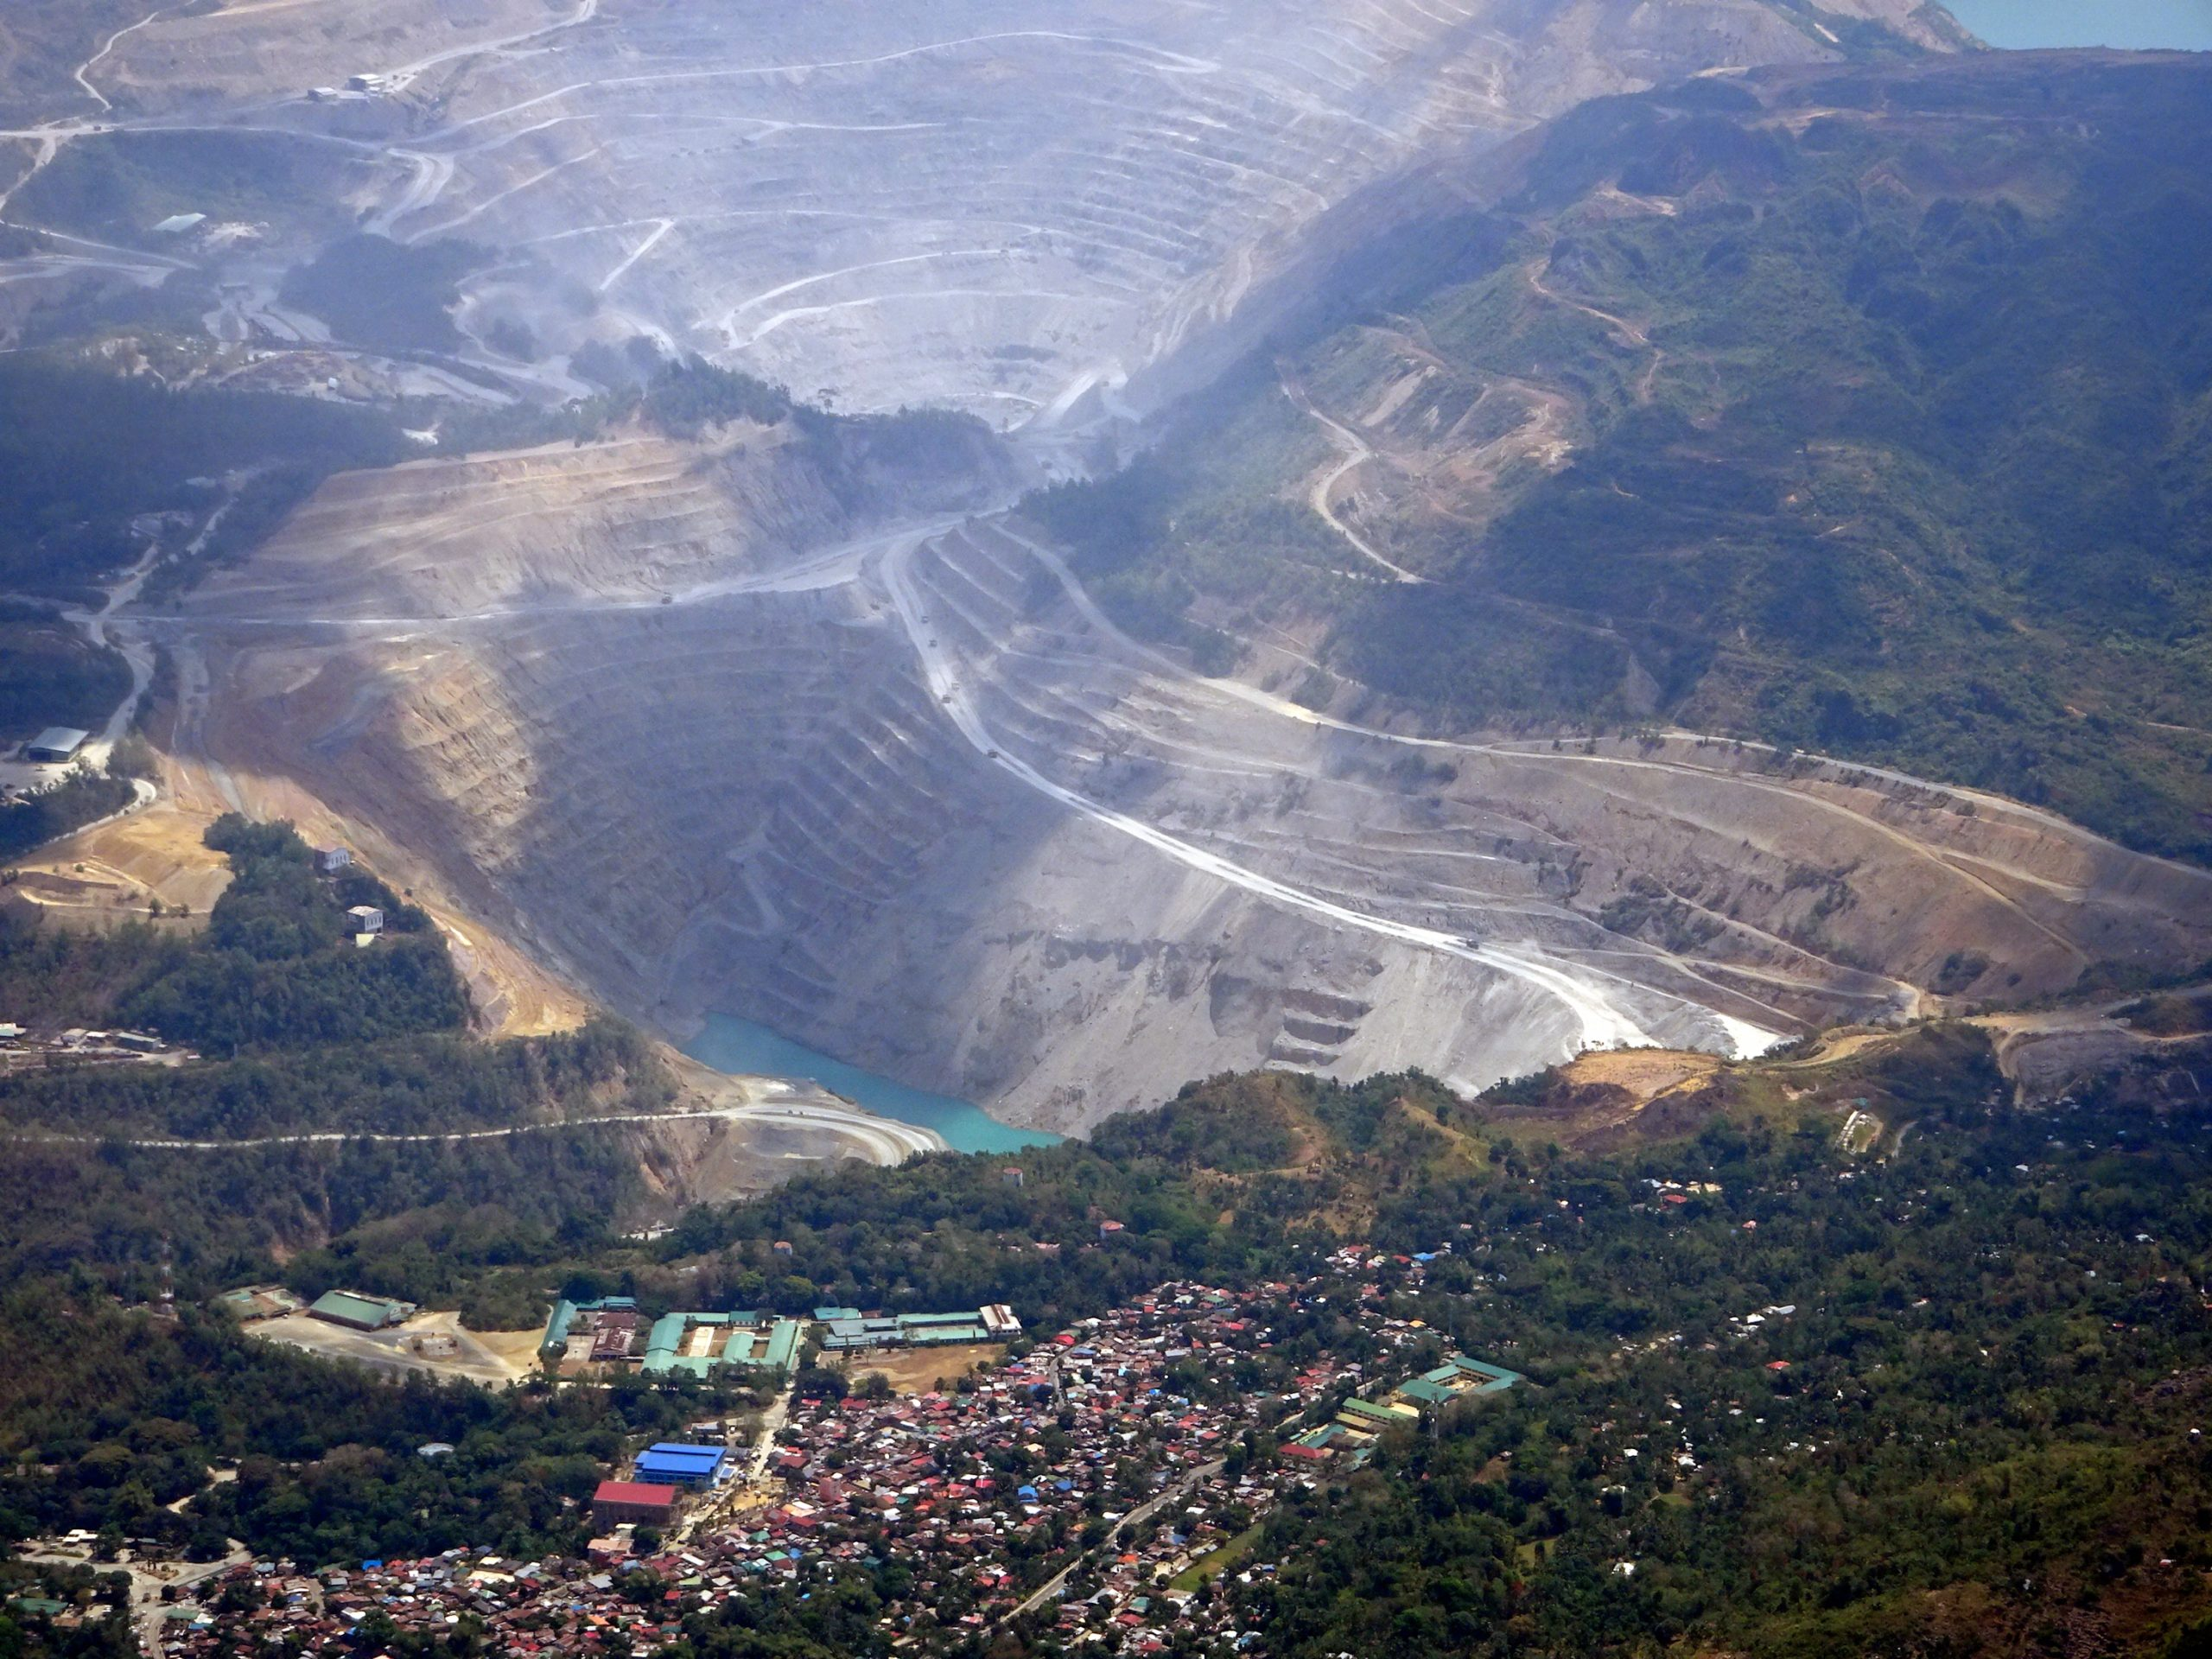 Banner image of the Carmen Pit, an open-pit copper mine site in Toledo, Cebu in the central Philippines, image taken in April 2016. Image by P199 via Wikimedia Commons (CC BY-SA 4.0)